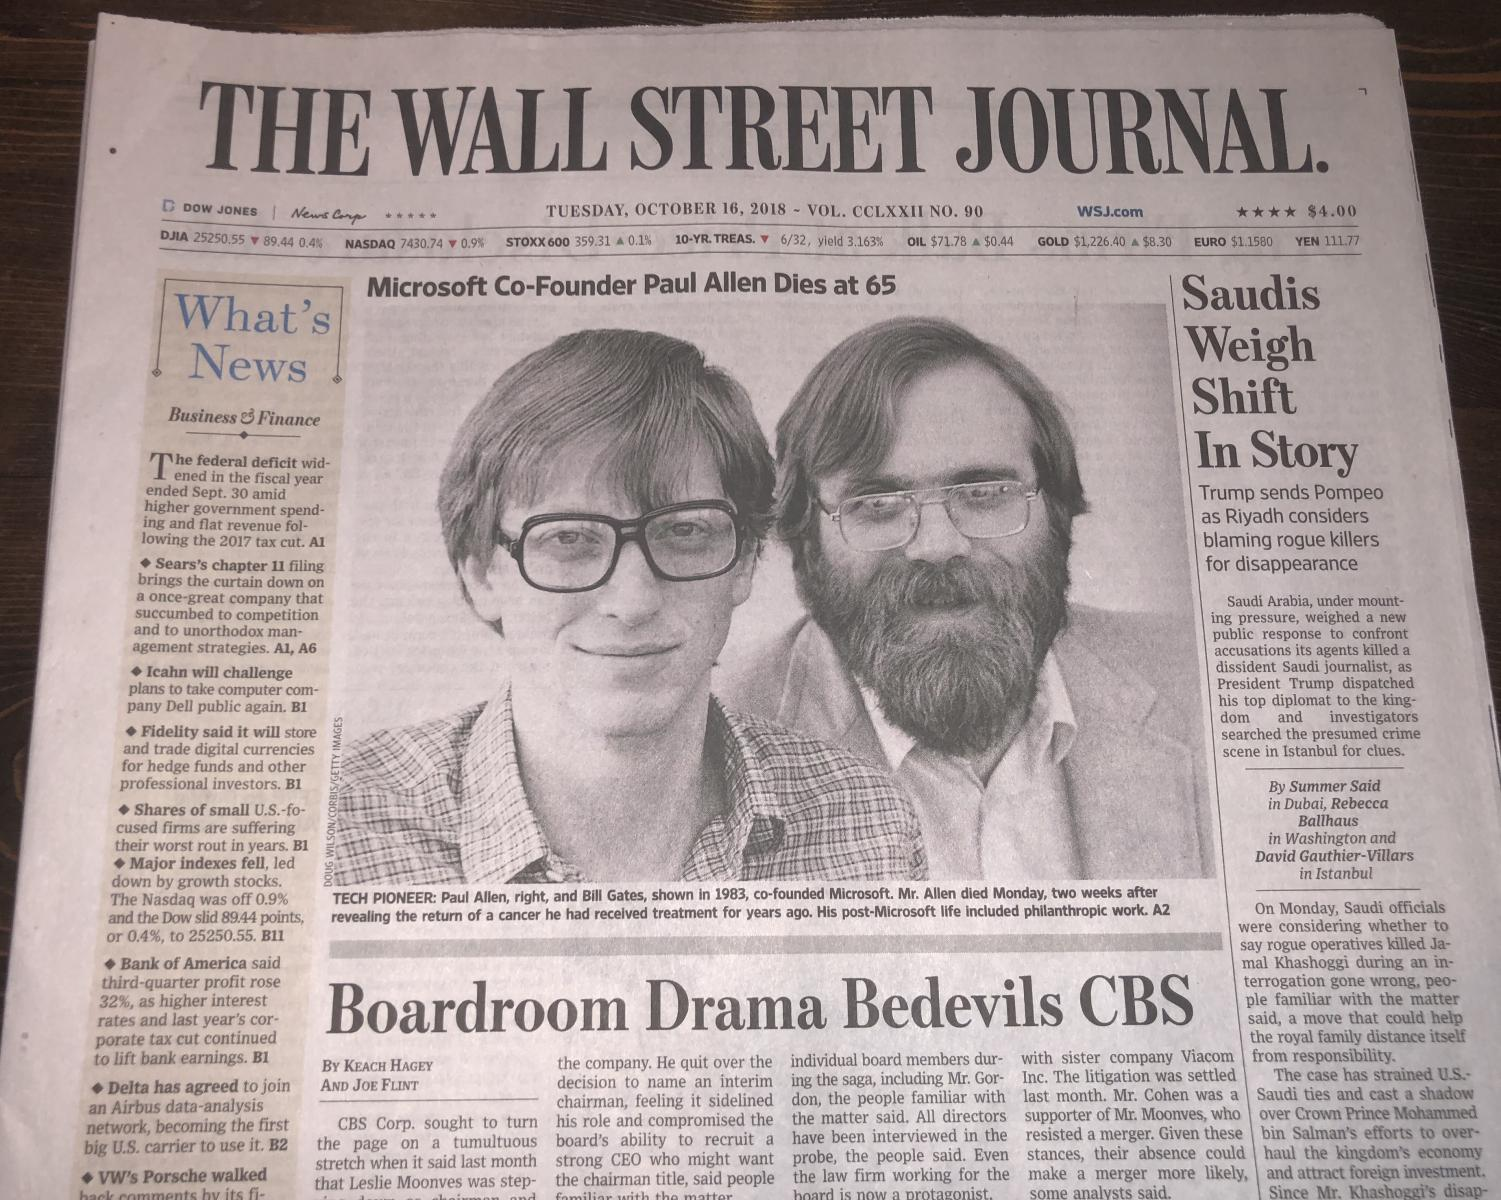 Front page of The Wall Street Journal, October 16th, 2017.